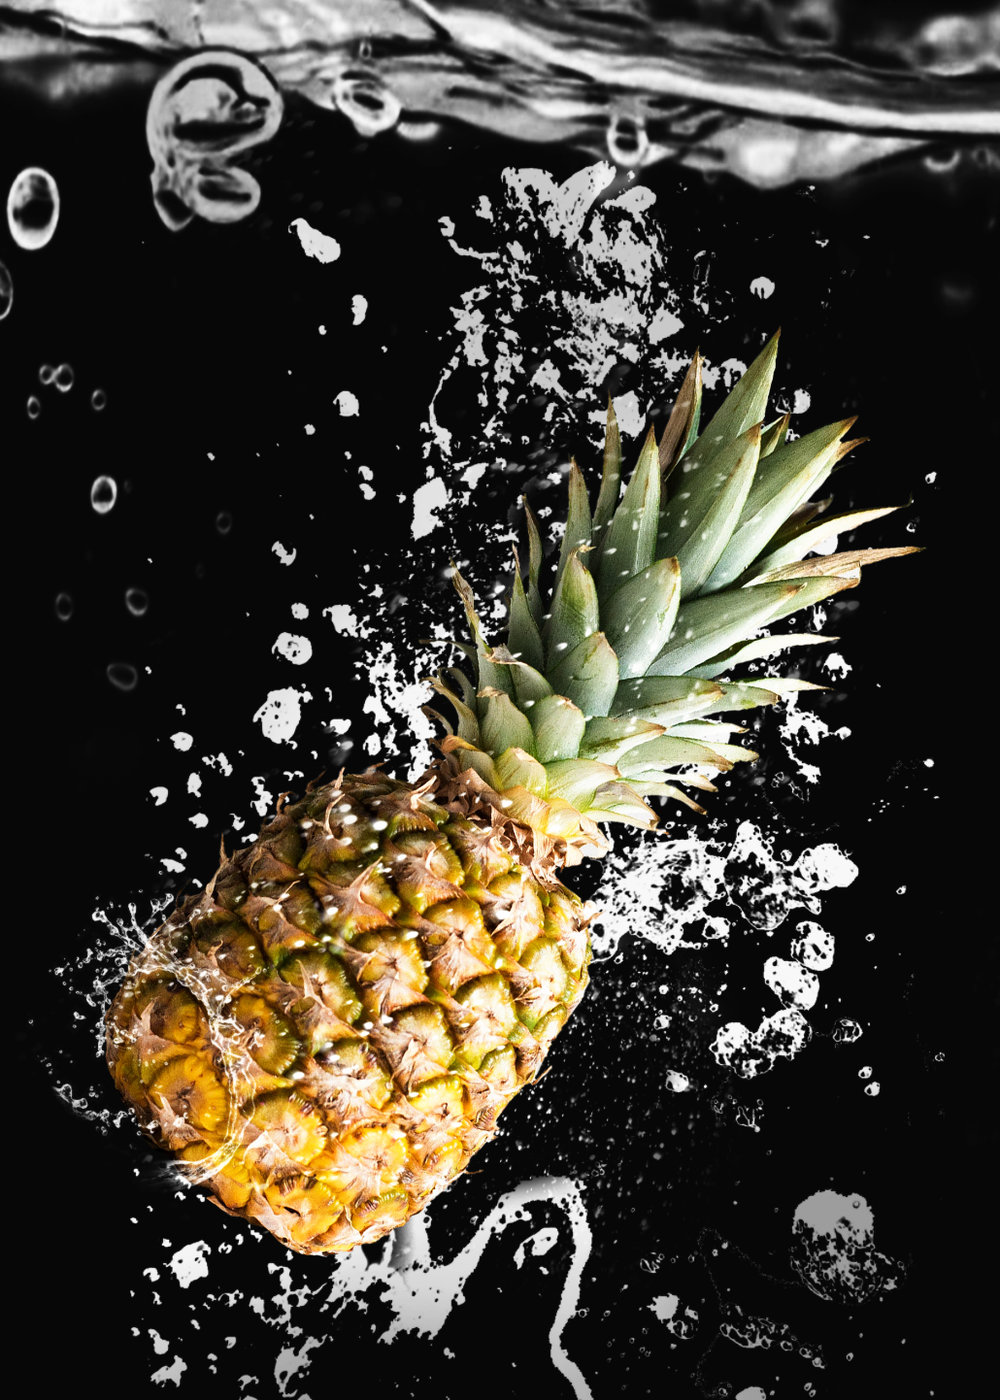 PINEAPPLE SPLASH | COMPOSITE